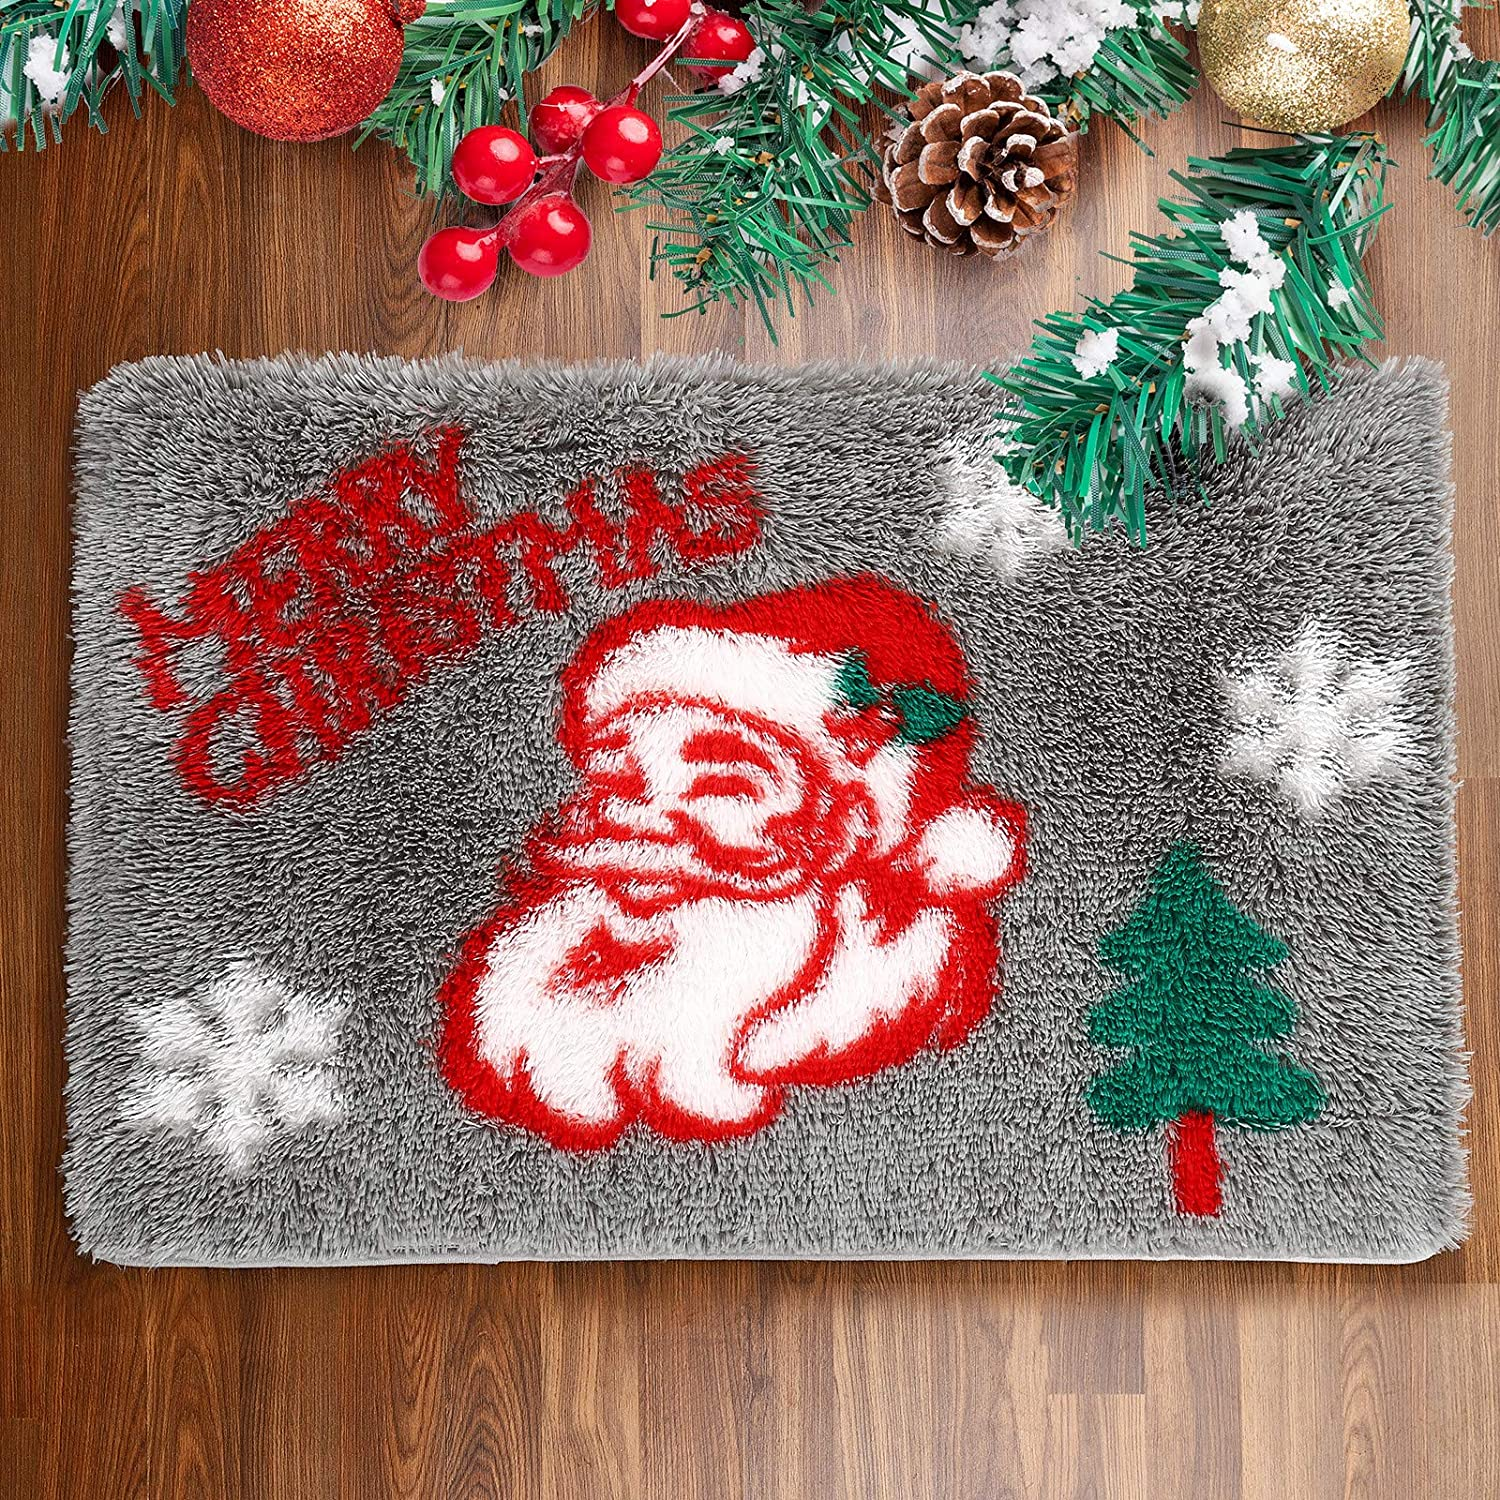 Rostyle Fluffy Christmas Rugs Santa Claus Christmas Bedroom Rug Plush Shaggy Runner Rug with Non Slip Backing, Shag Christmas Doormat Xmas Holiday Decor Carpets for Bedside, 2 ft x 3 ft